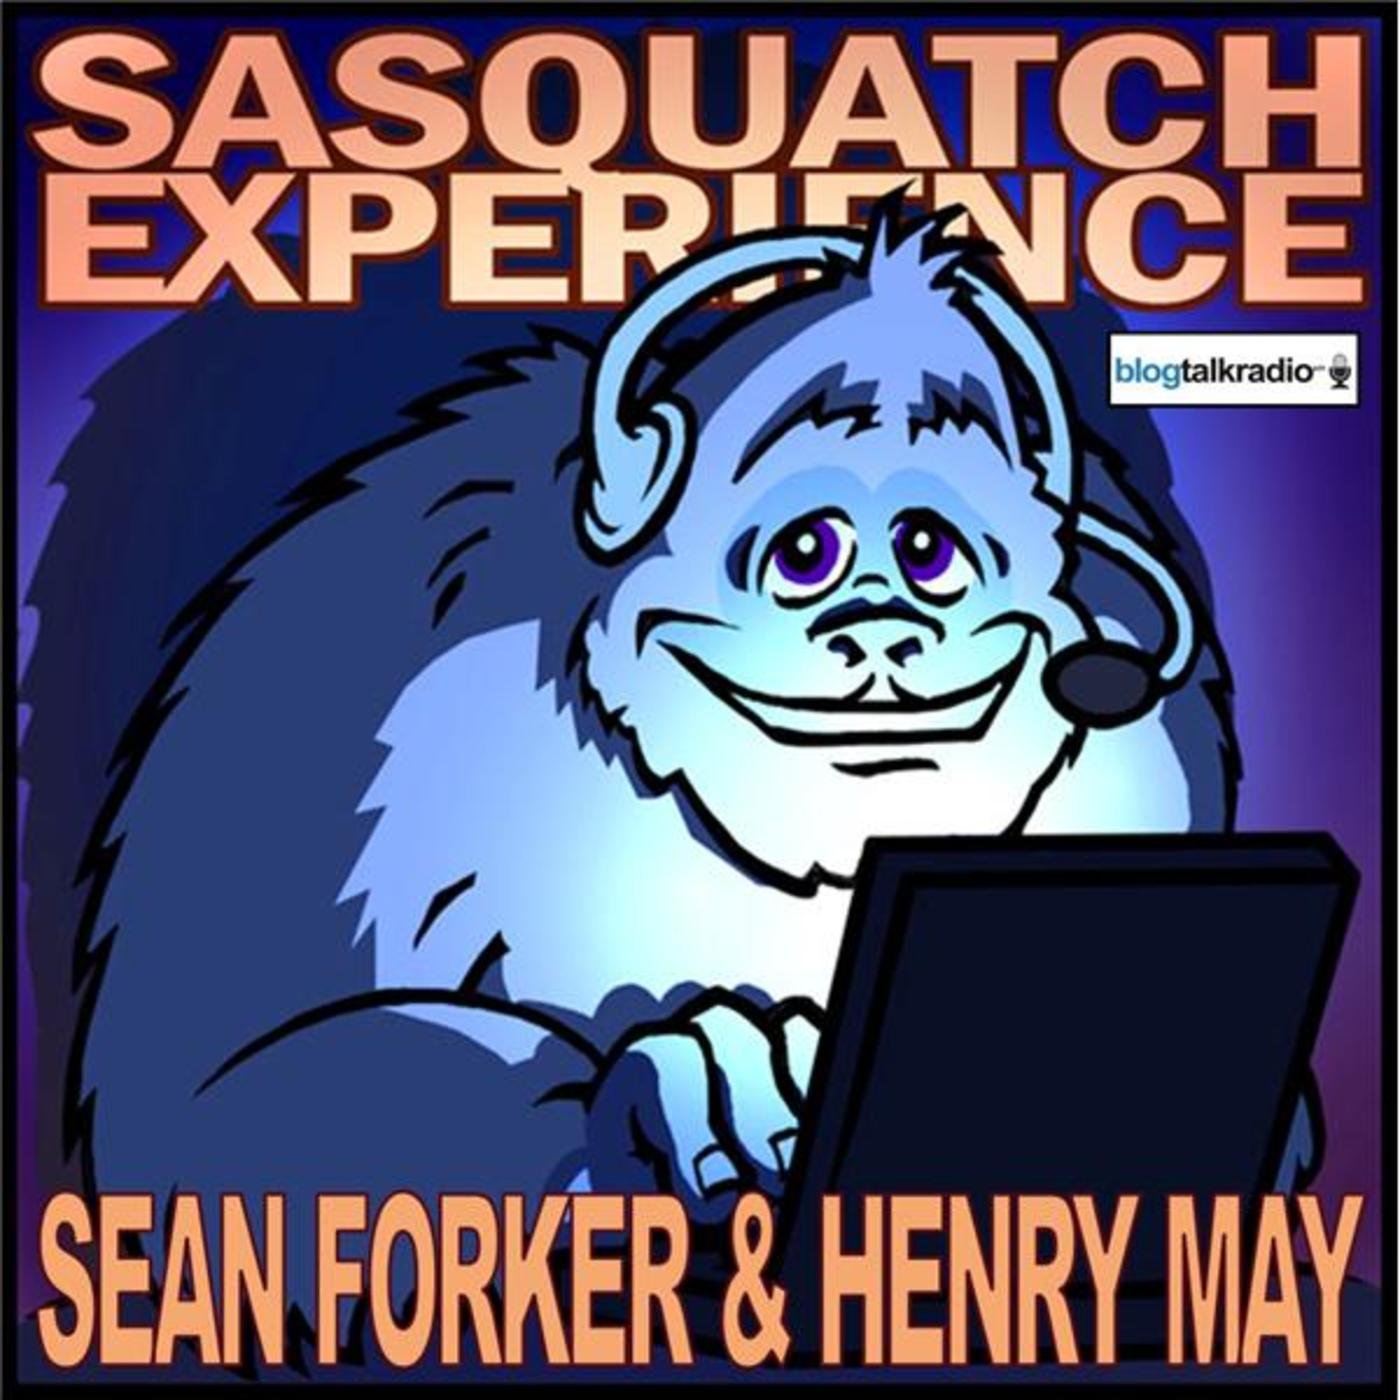 The Sasquatch Experience